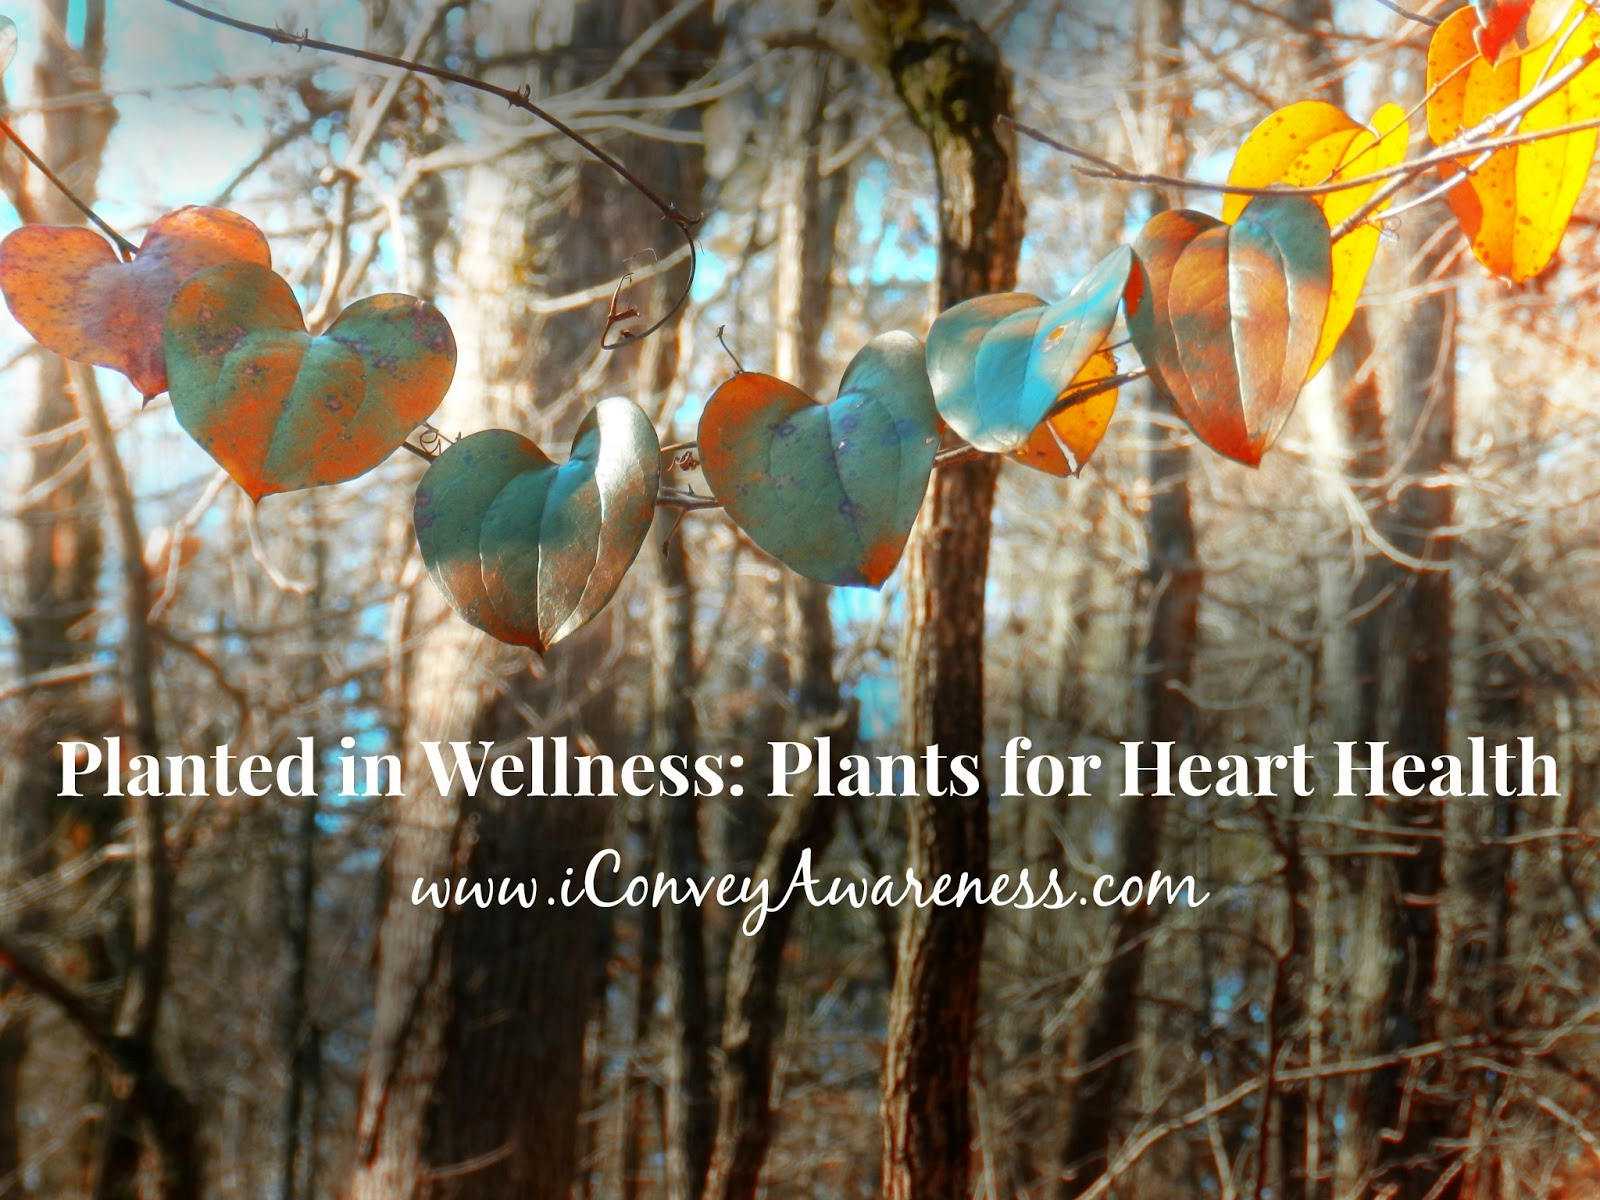 iConveyAwareness | Planted in Wellness: Plants for Heart Health (cover)